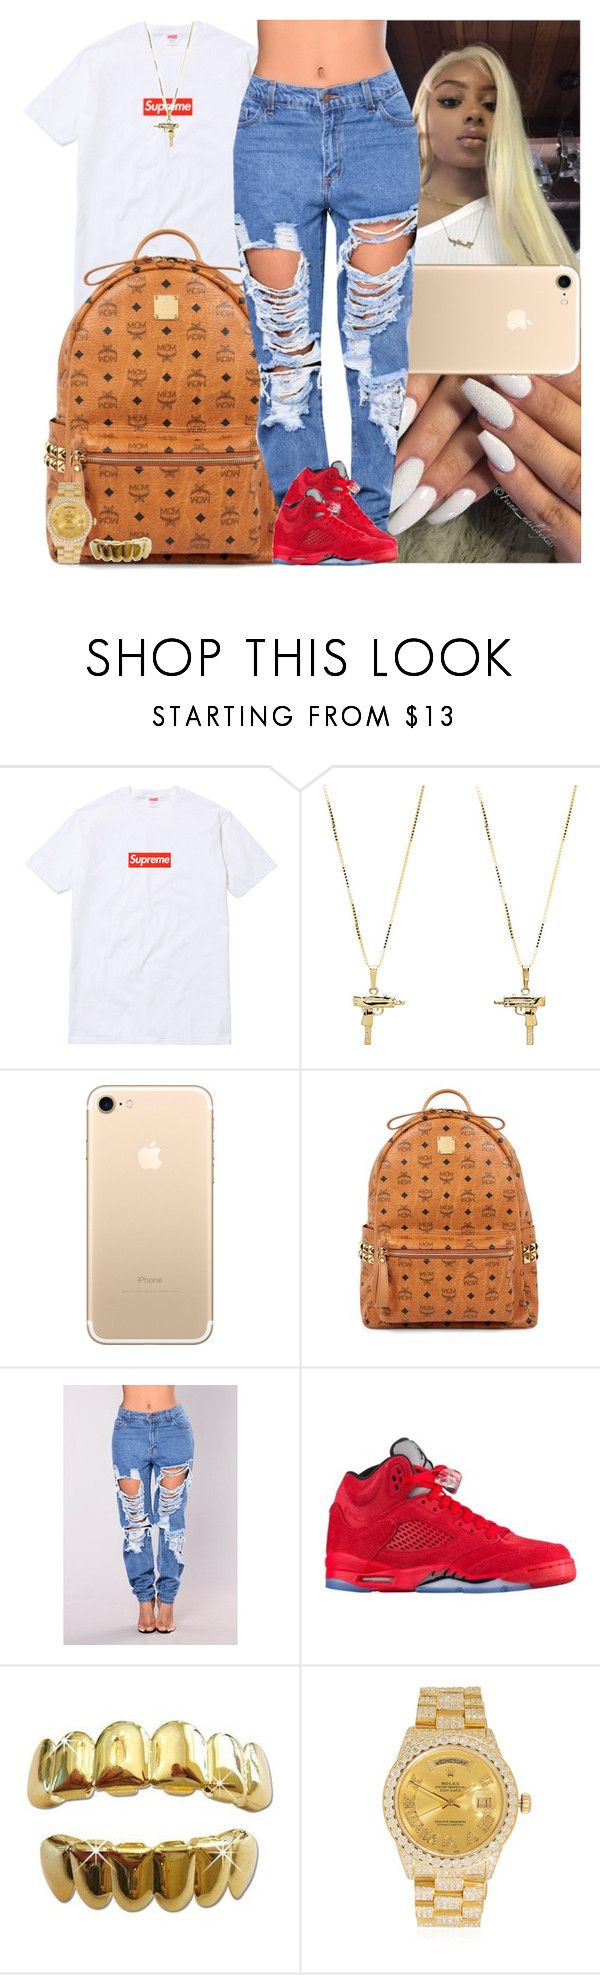 """""""Untitled #1277"""" by msixo ❤ liked on Polyvore featuring UZI, MCM and Rolex"""